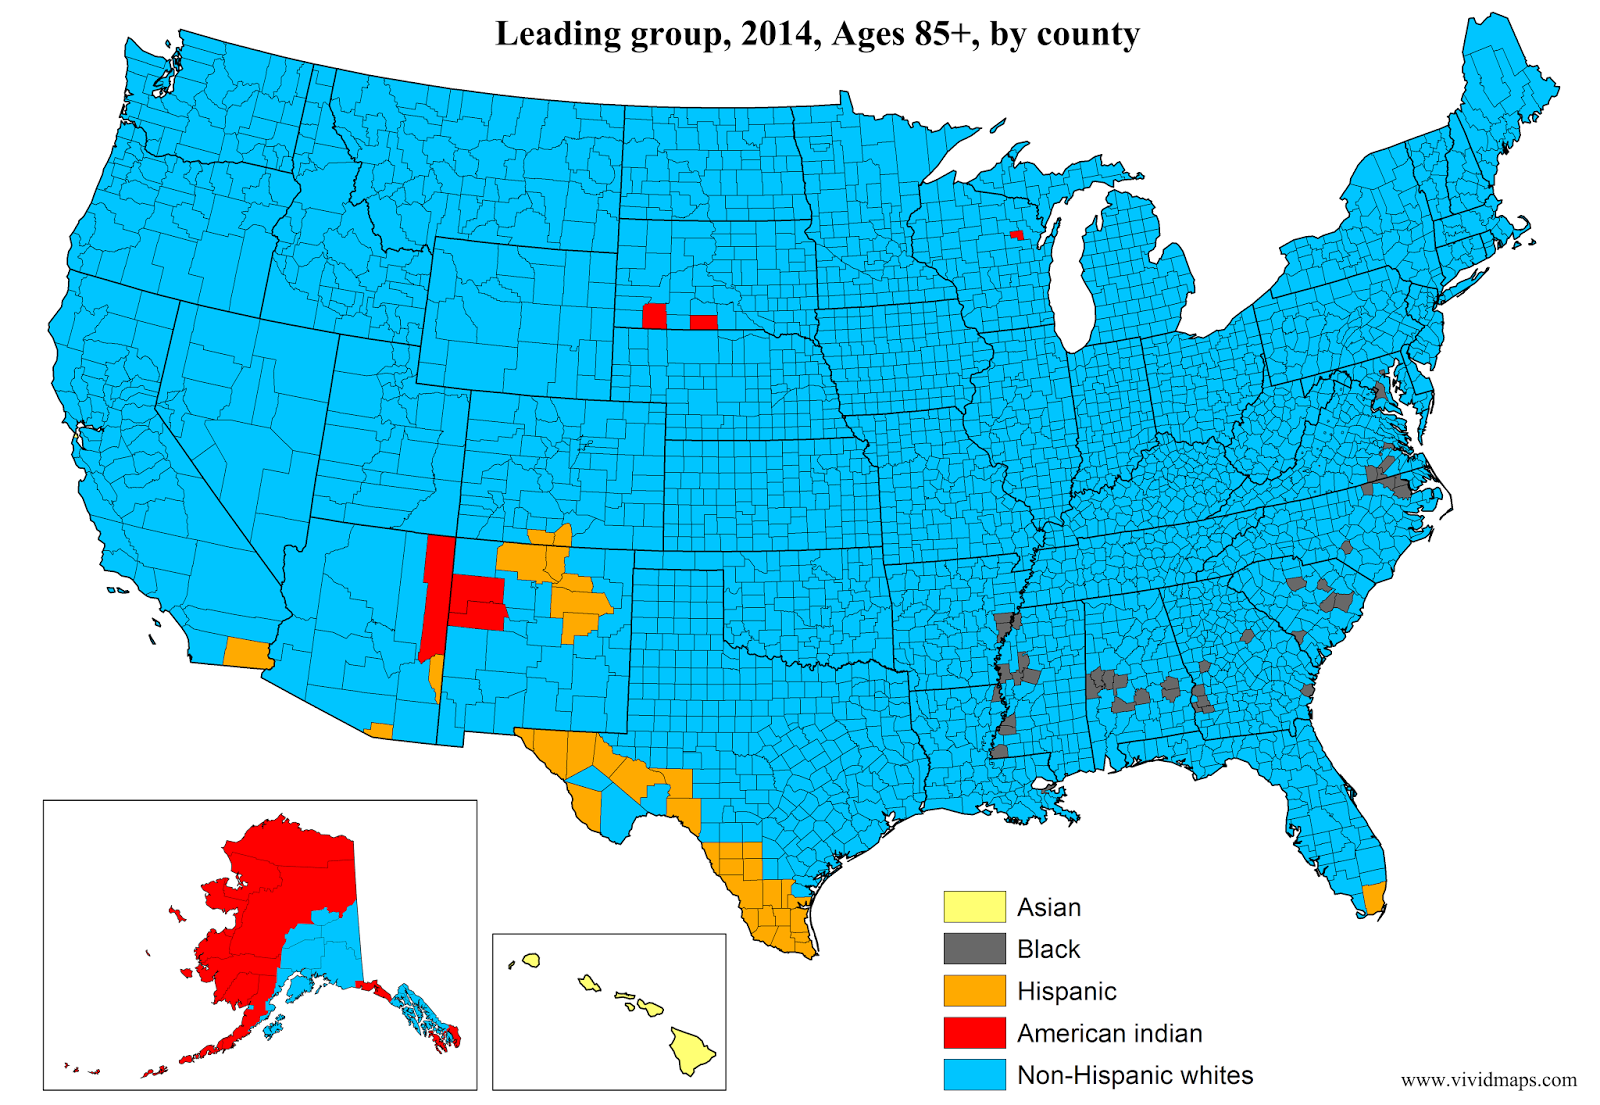 Leading group, Ages 85+, by county